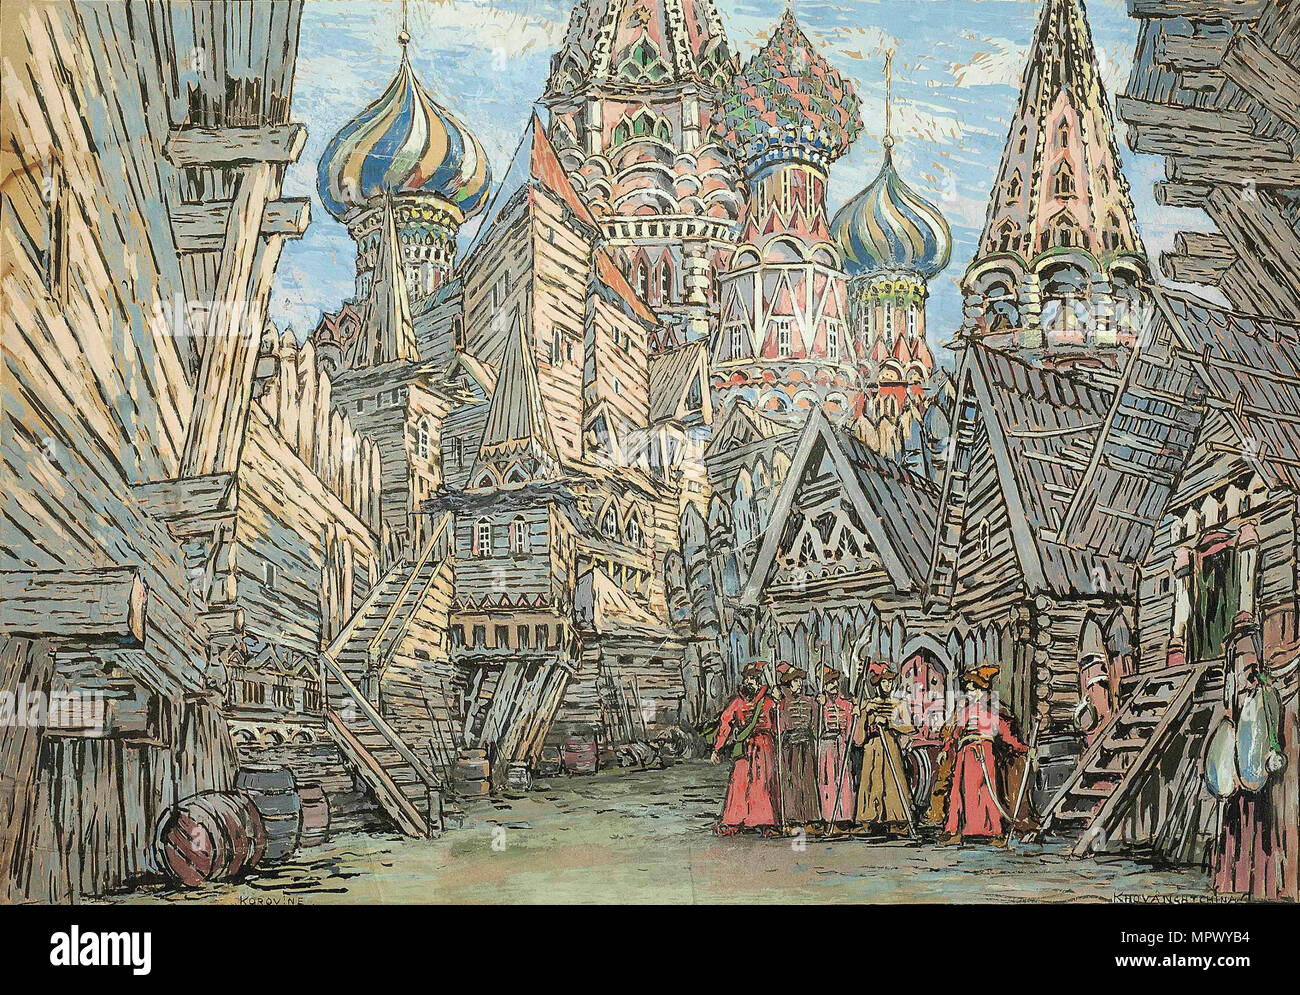 Stage design for the opera Khovanshchina by M. Musorgsky. - Stock Image